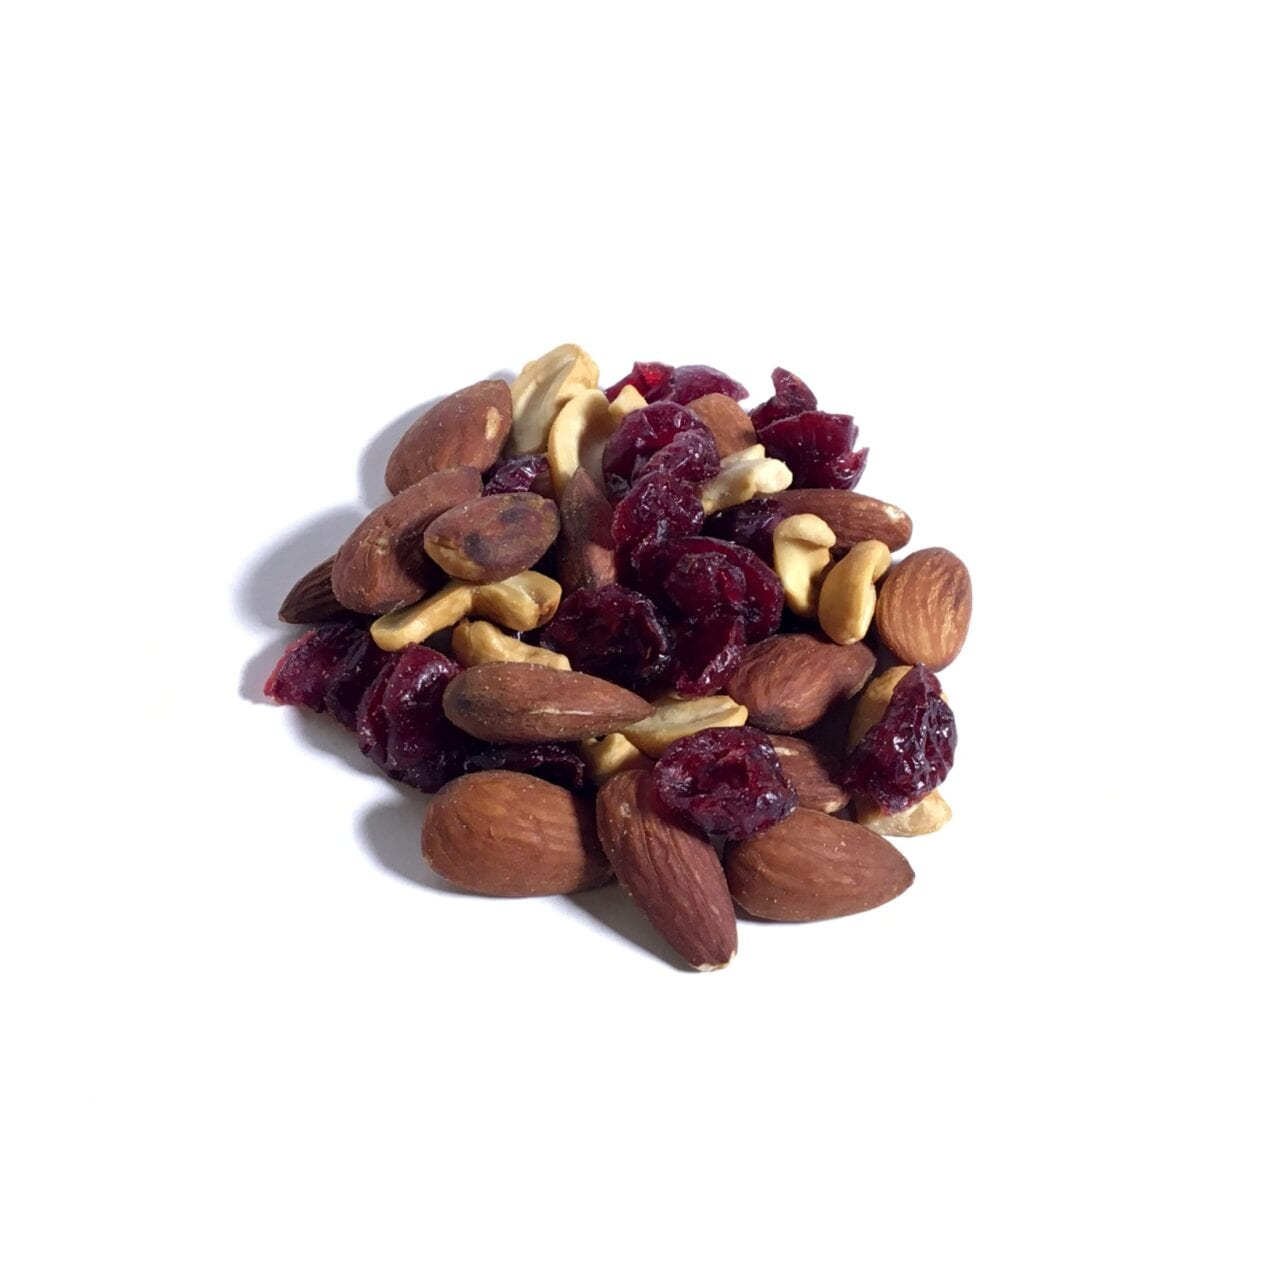 A pile of GORP trail mix including nuts and fruit.